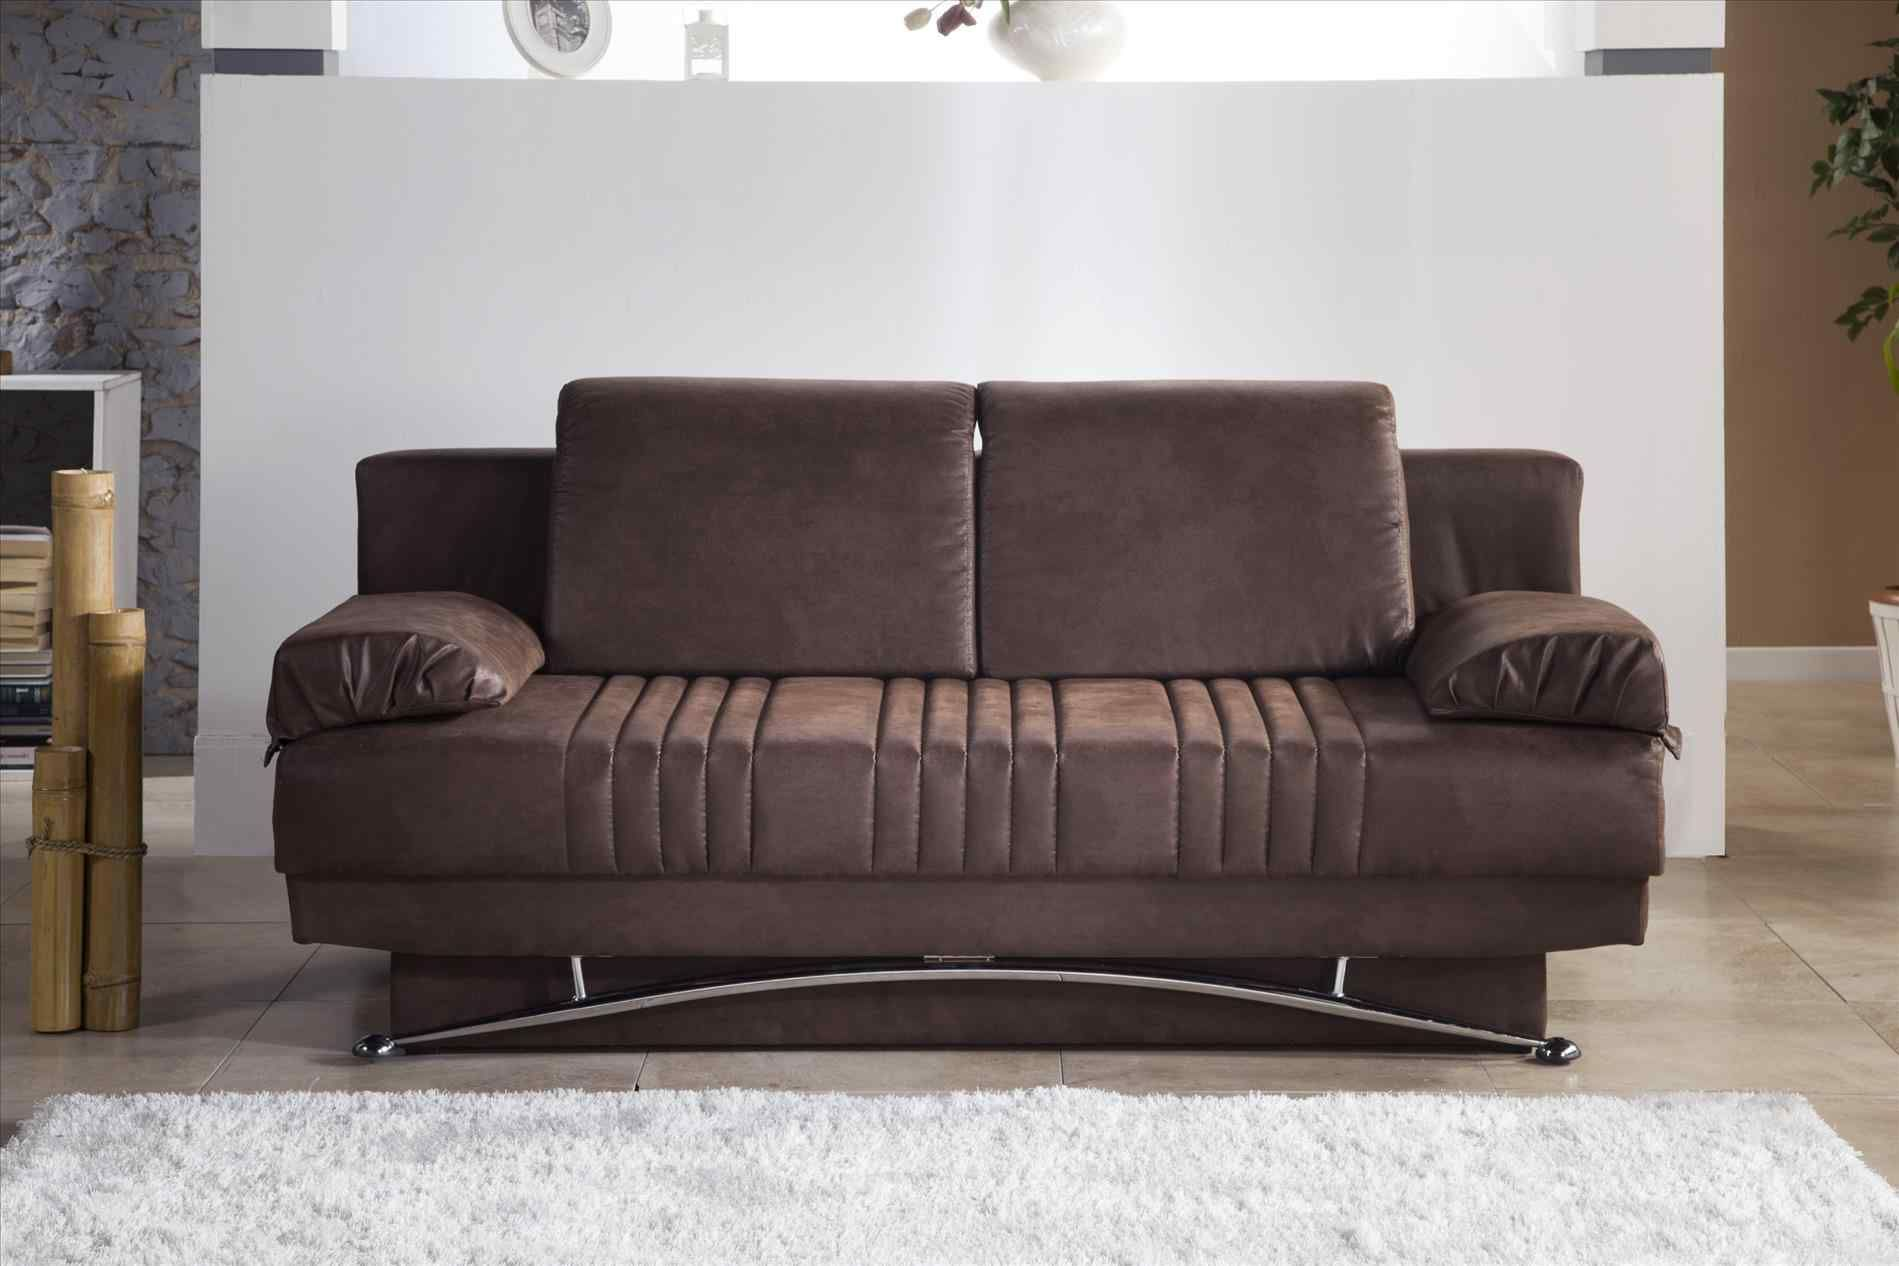 Brilliant Bed Convertible Istikbal Fantasy Sleeper Sofa Living Room Pabps2019 Chair Design Images Pabps2019Com